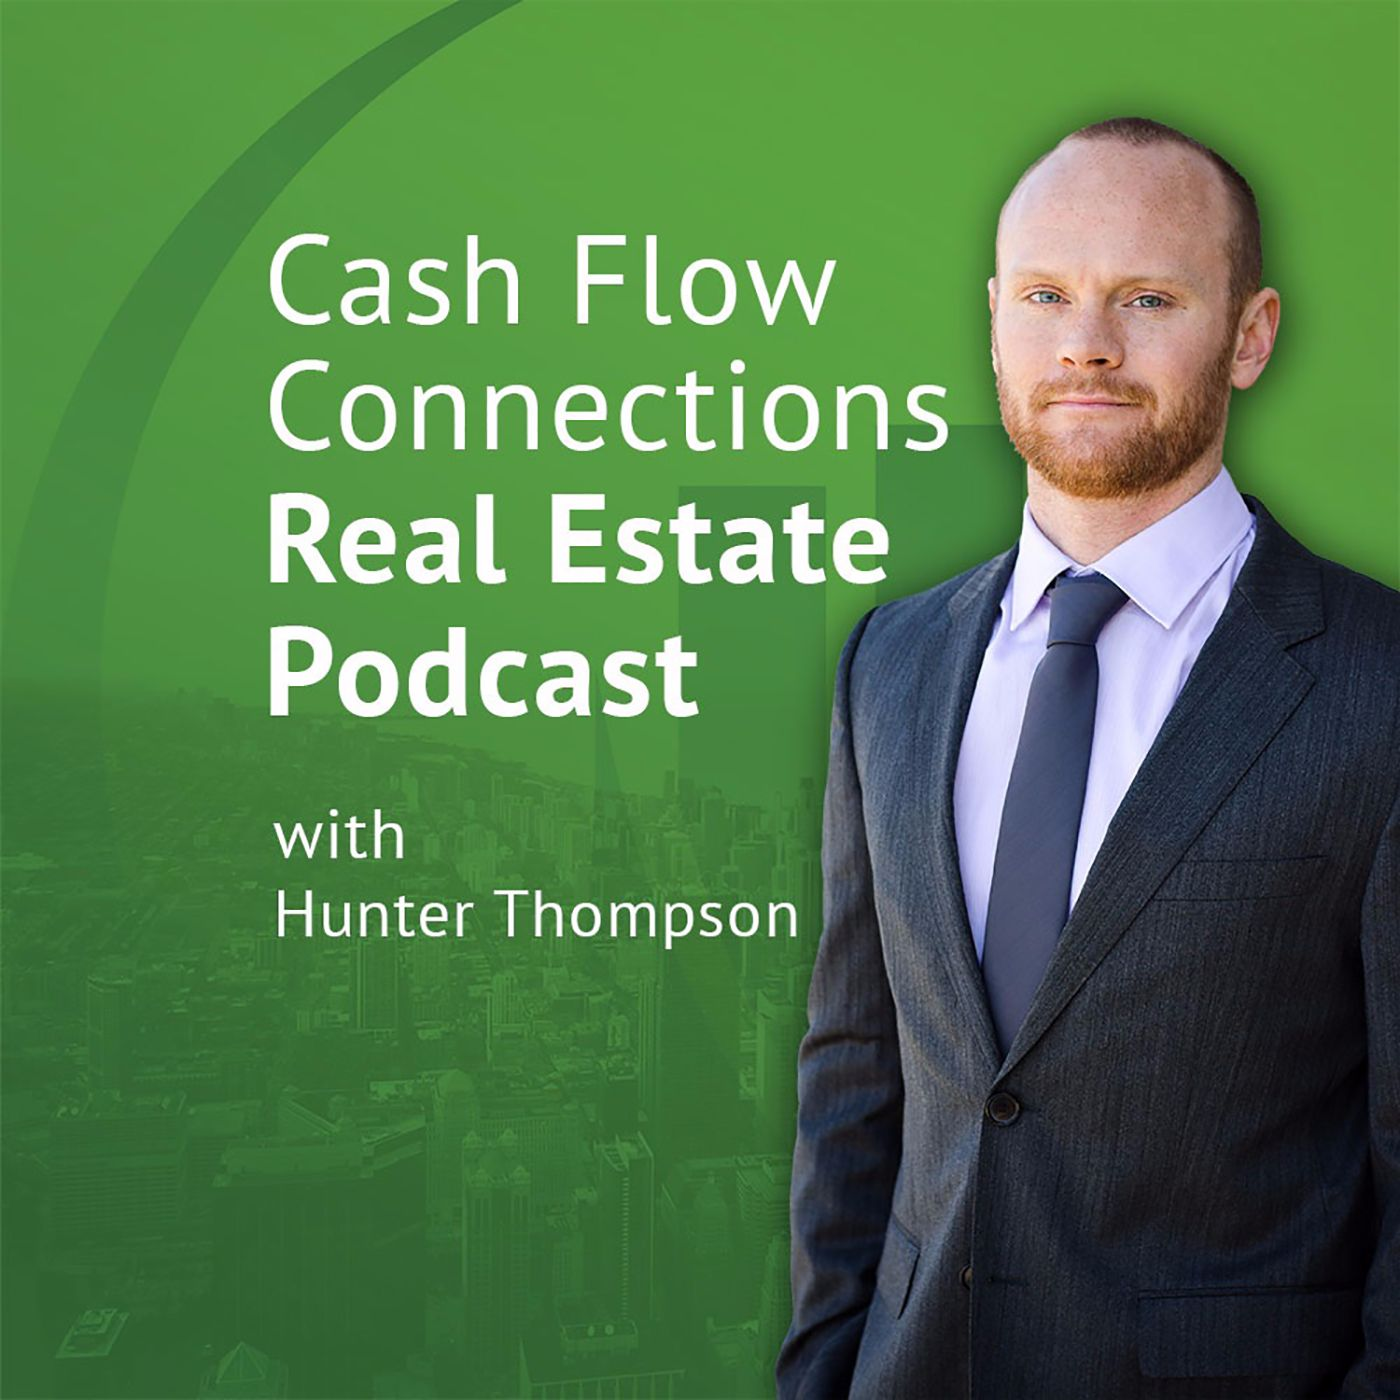 Cash Flow Connections - Real Estate Podcast show art